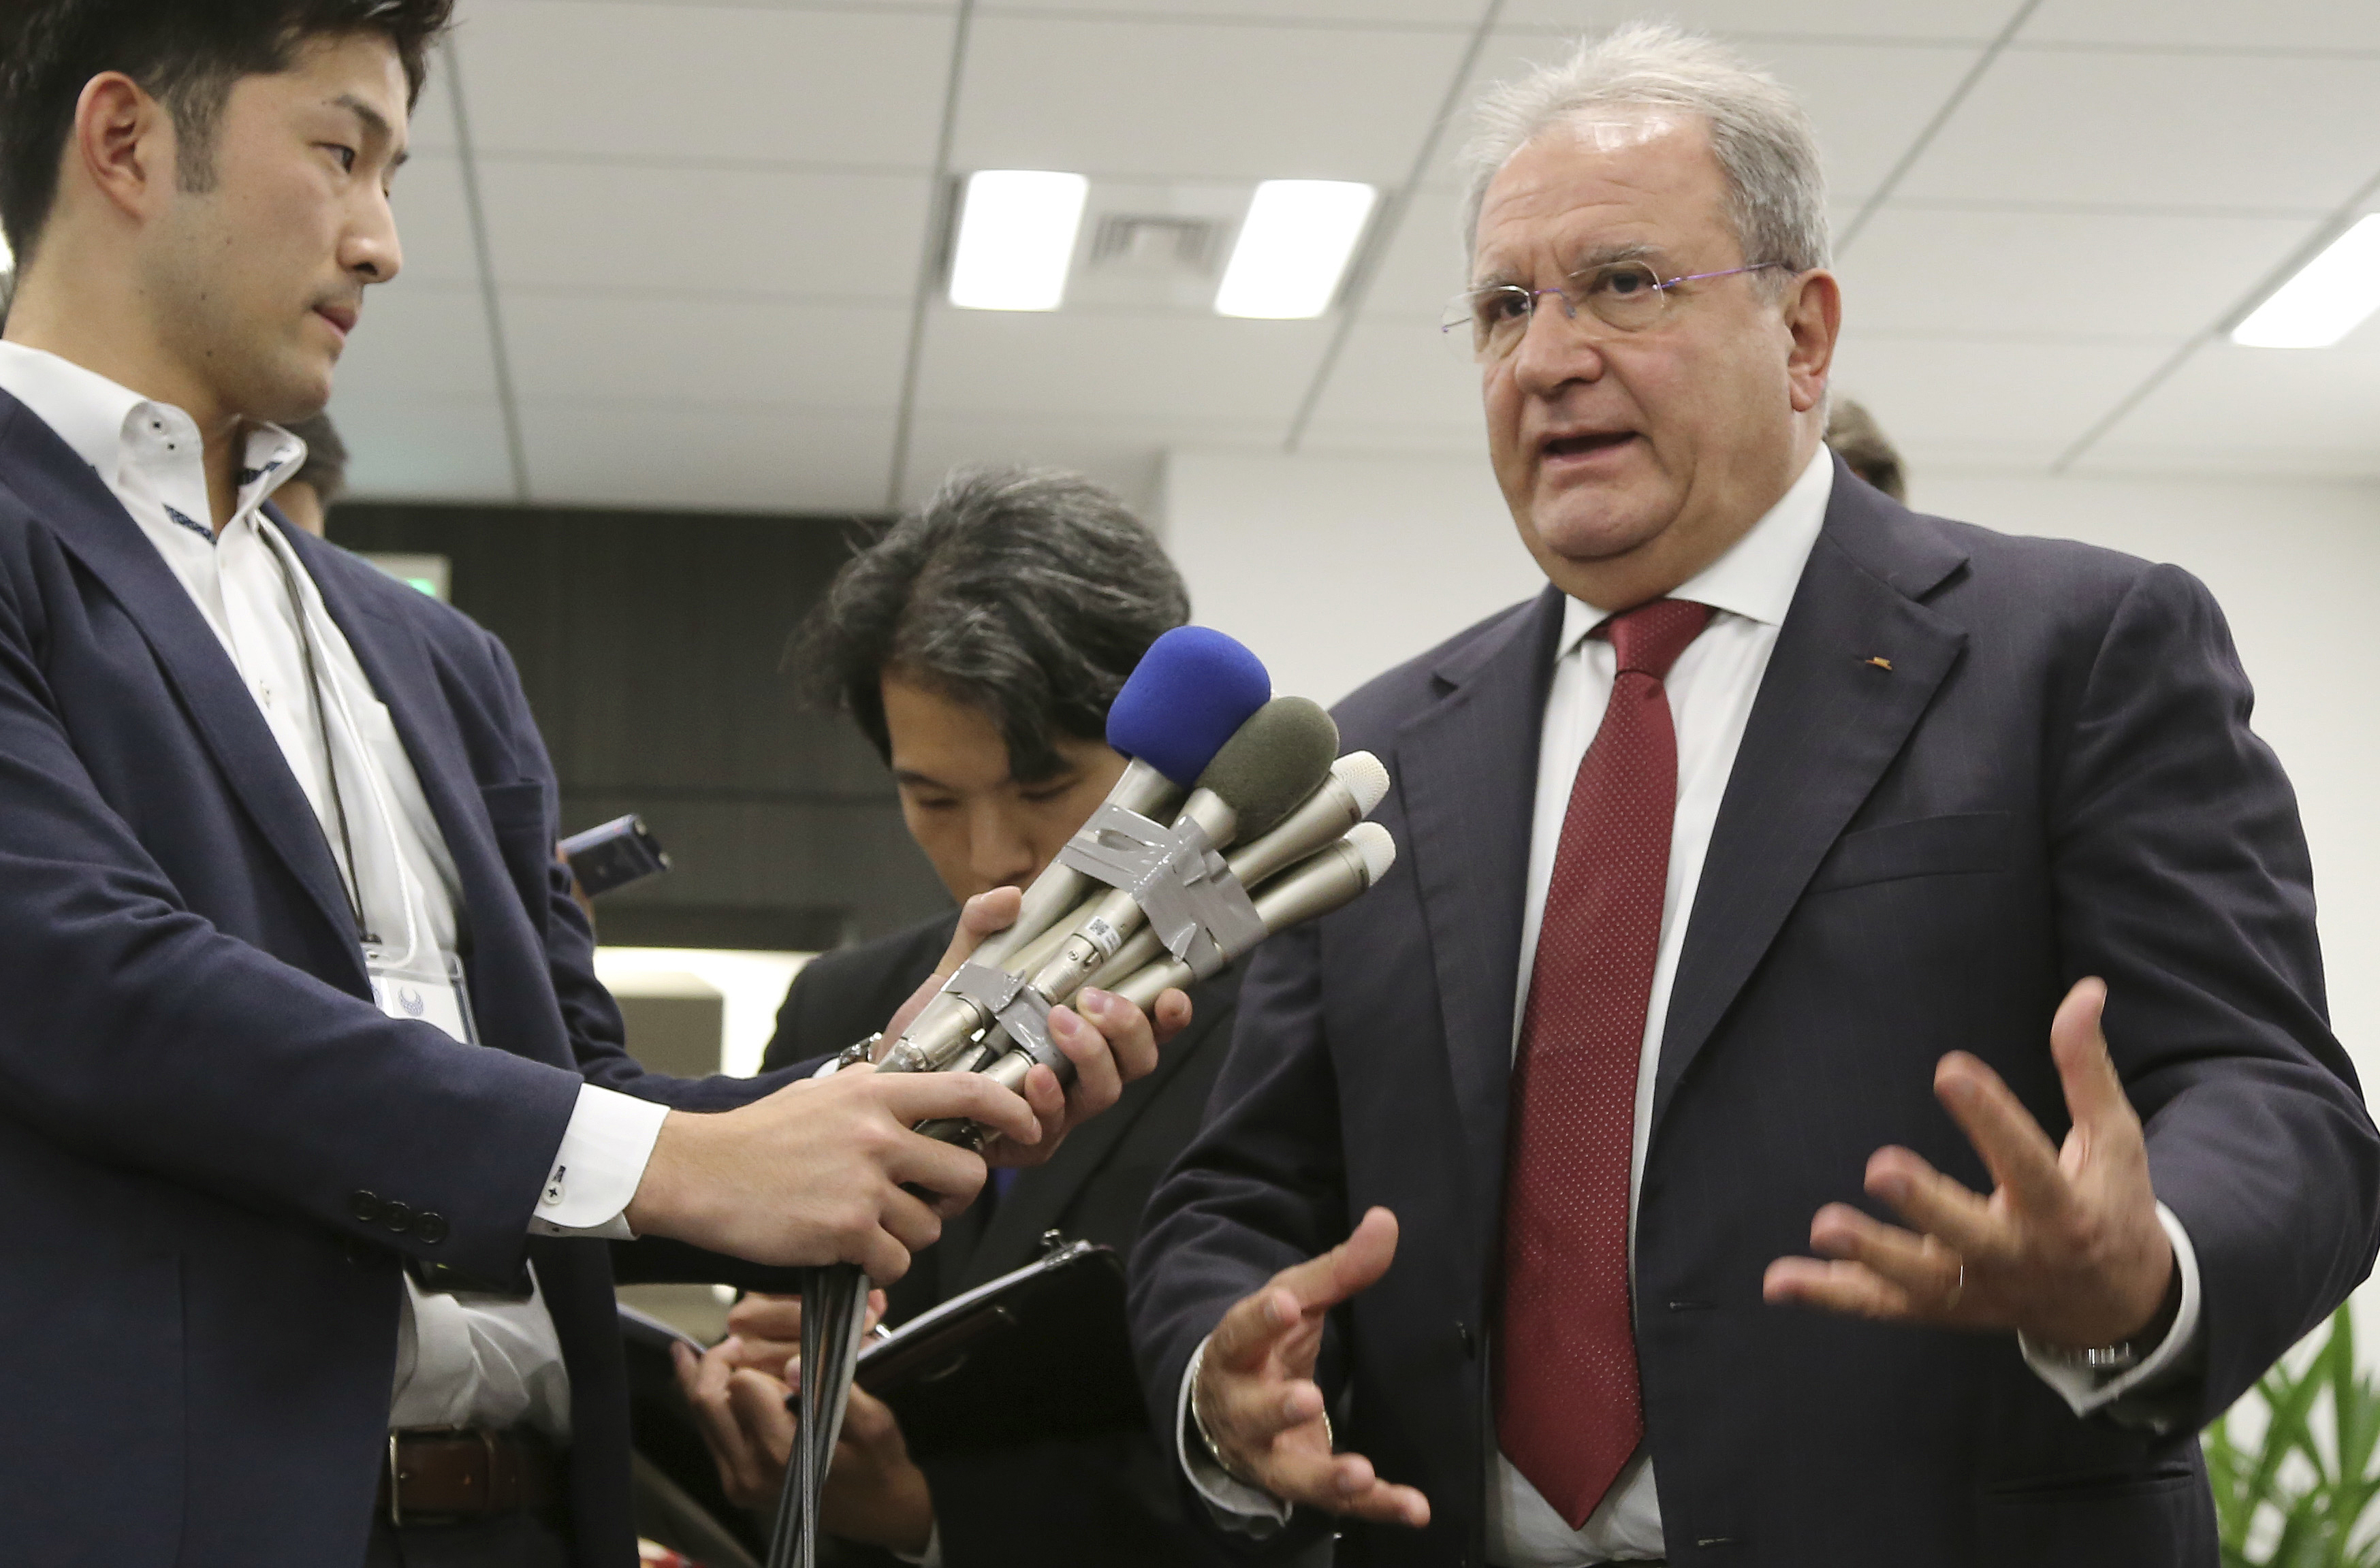 The president of the World Baseball Softball Confederation Ricardo Fraccari at press conference in Tokyo on Friday. | AP